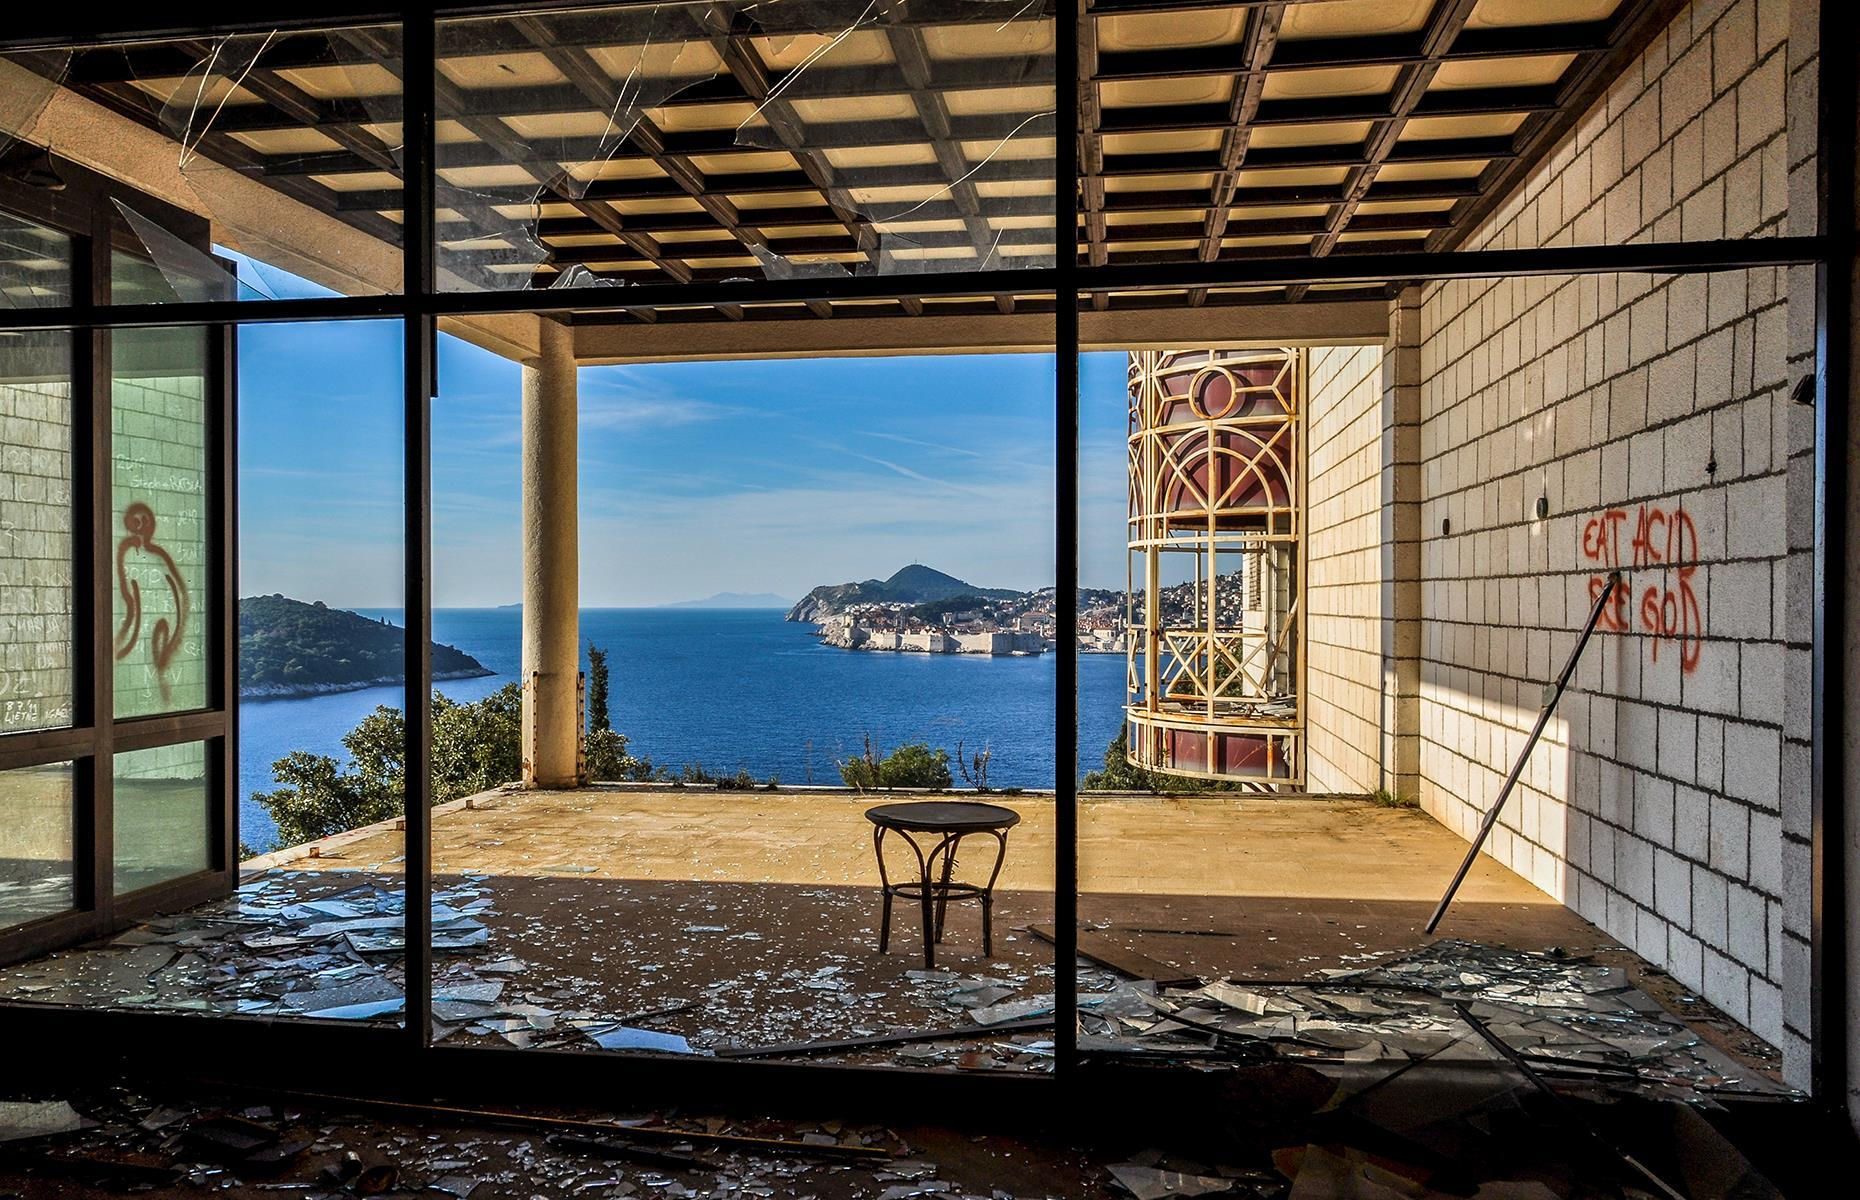 Slide 33 of 70: Located just above the seashore, with views of Dubrovnik and the island of Lokrum, this sprawling resort has fallen victim to vandals. However, part of the hotel was used during the filming of season fourof Game of Thrones. There are plans for the site's demolition and redevelopment.